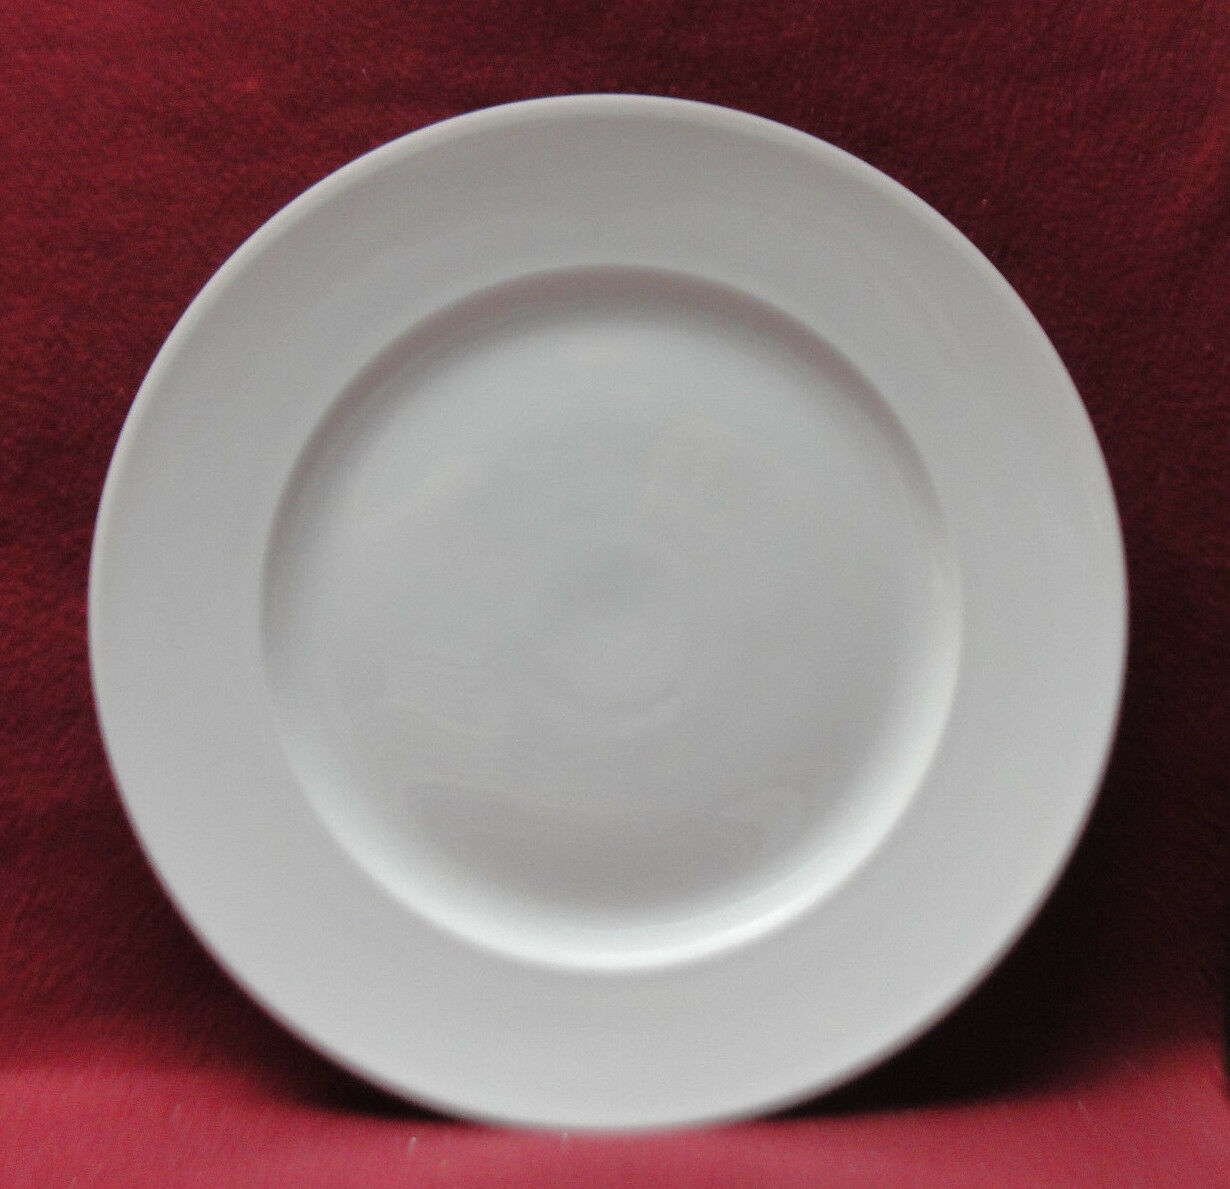 "Primary image for ROSENTHAL China - COMPOSITION WHITE Pattern - 10 1/2"" DINNER PLATE"